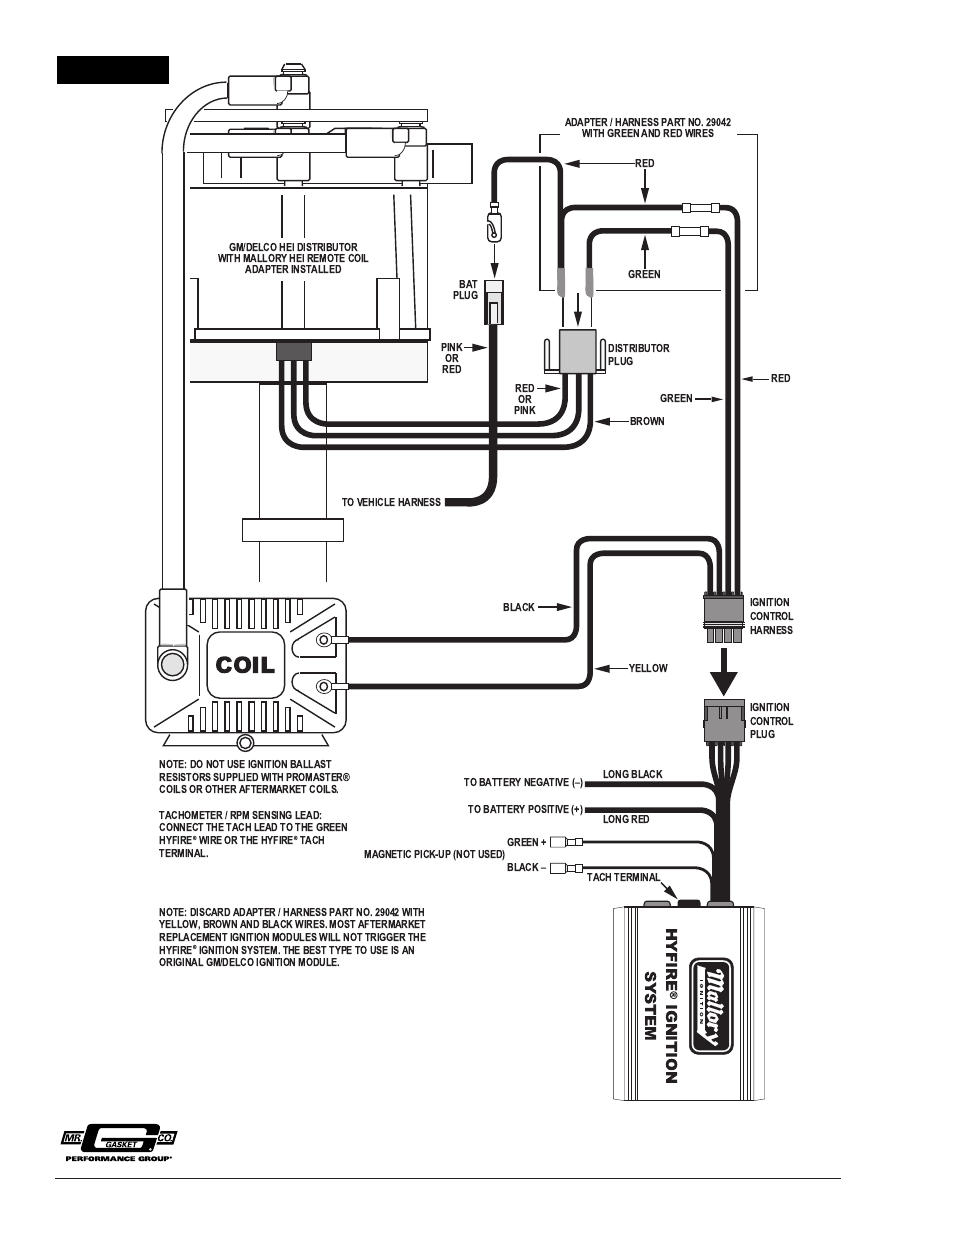 Msd 8360 Wiring Diagram Manual Of Mallory Pro Comp Distributor For Msd6al To 8360m